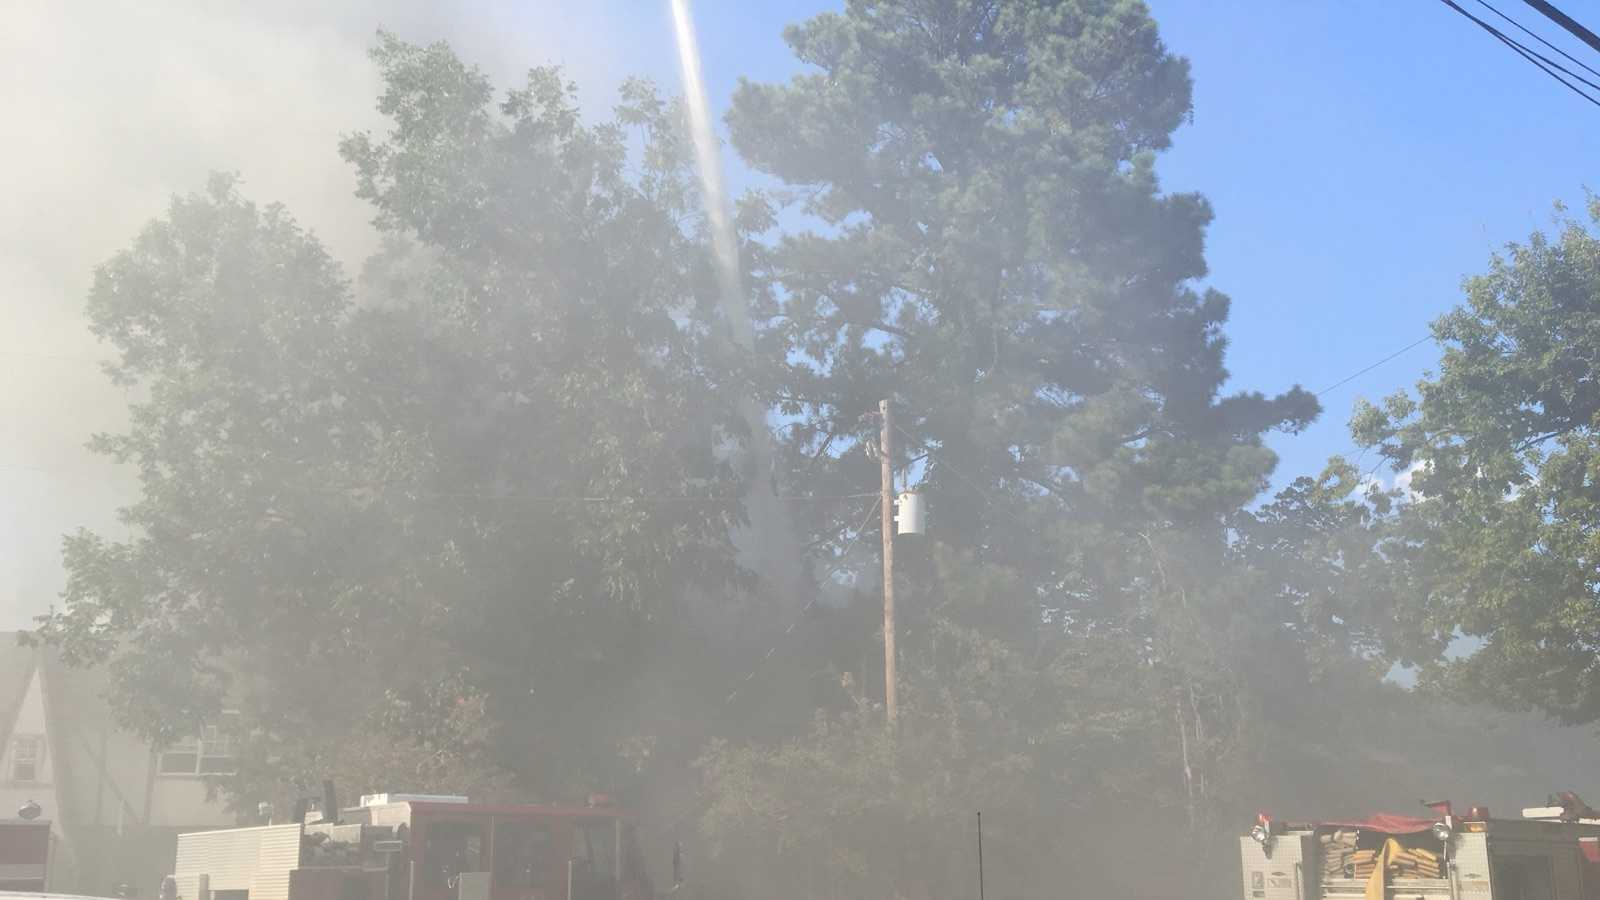 Three homes in the Ensley community caught fire in less than hour Wednesday afternoon.